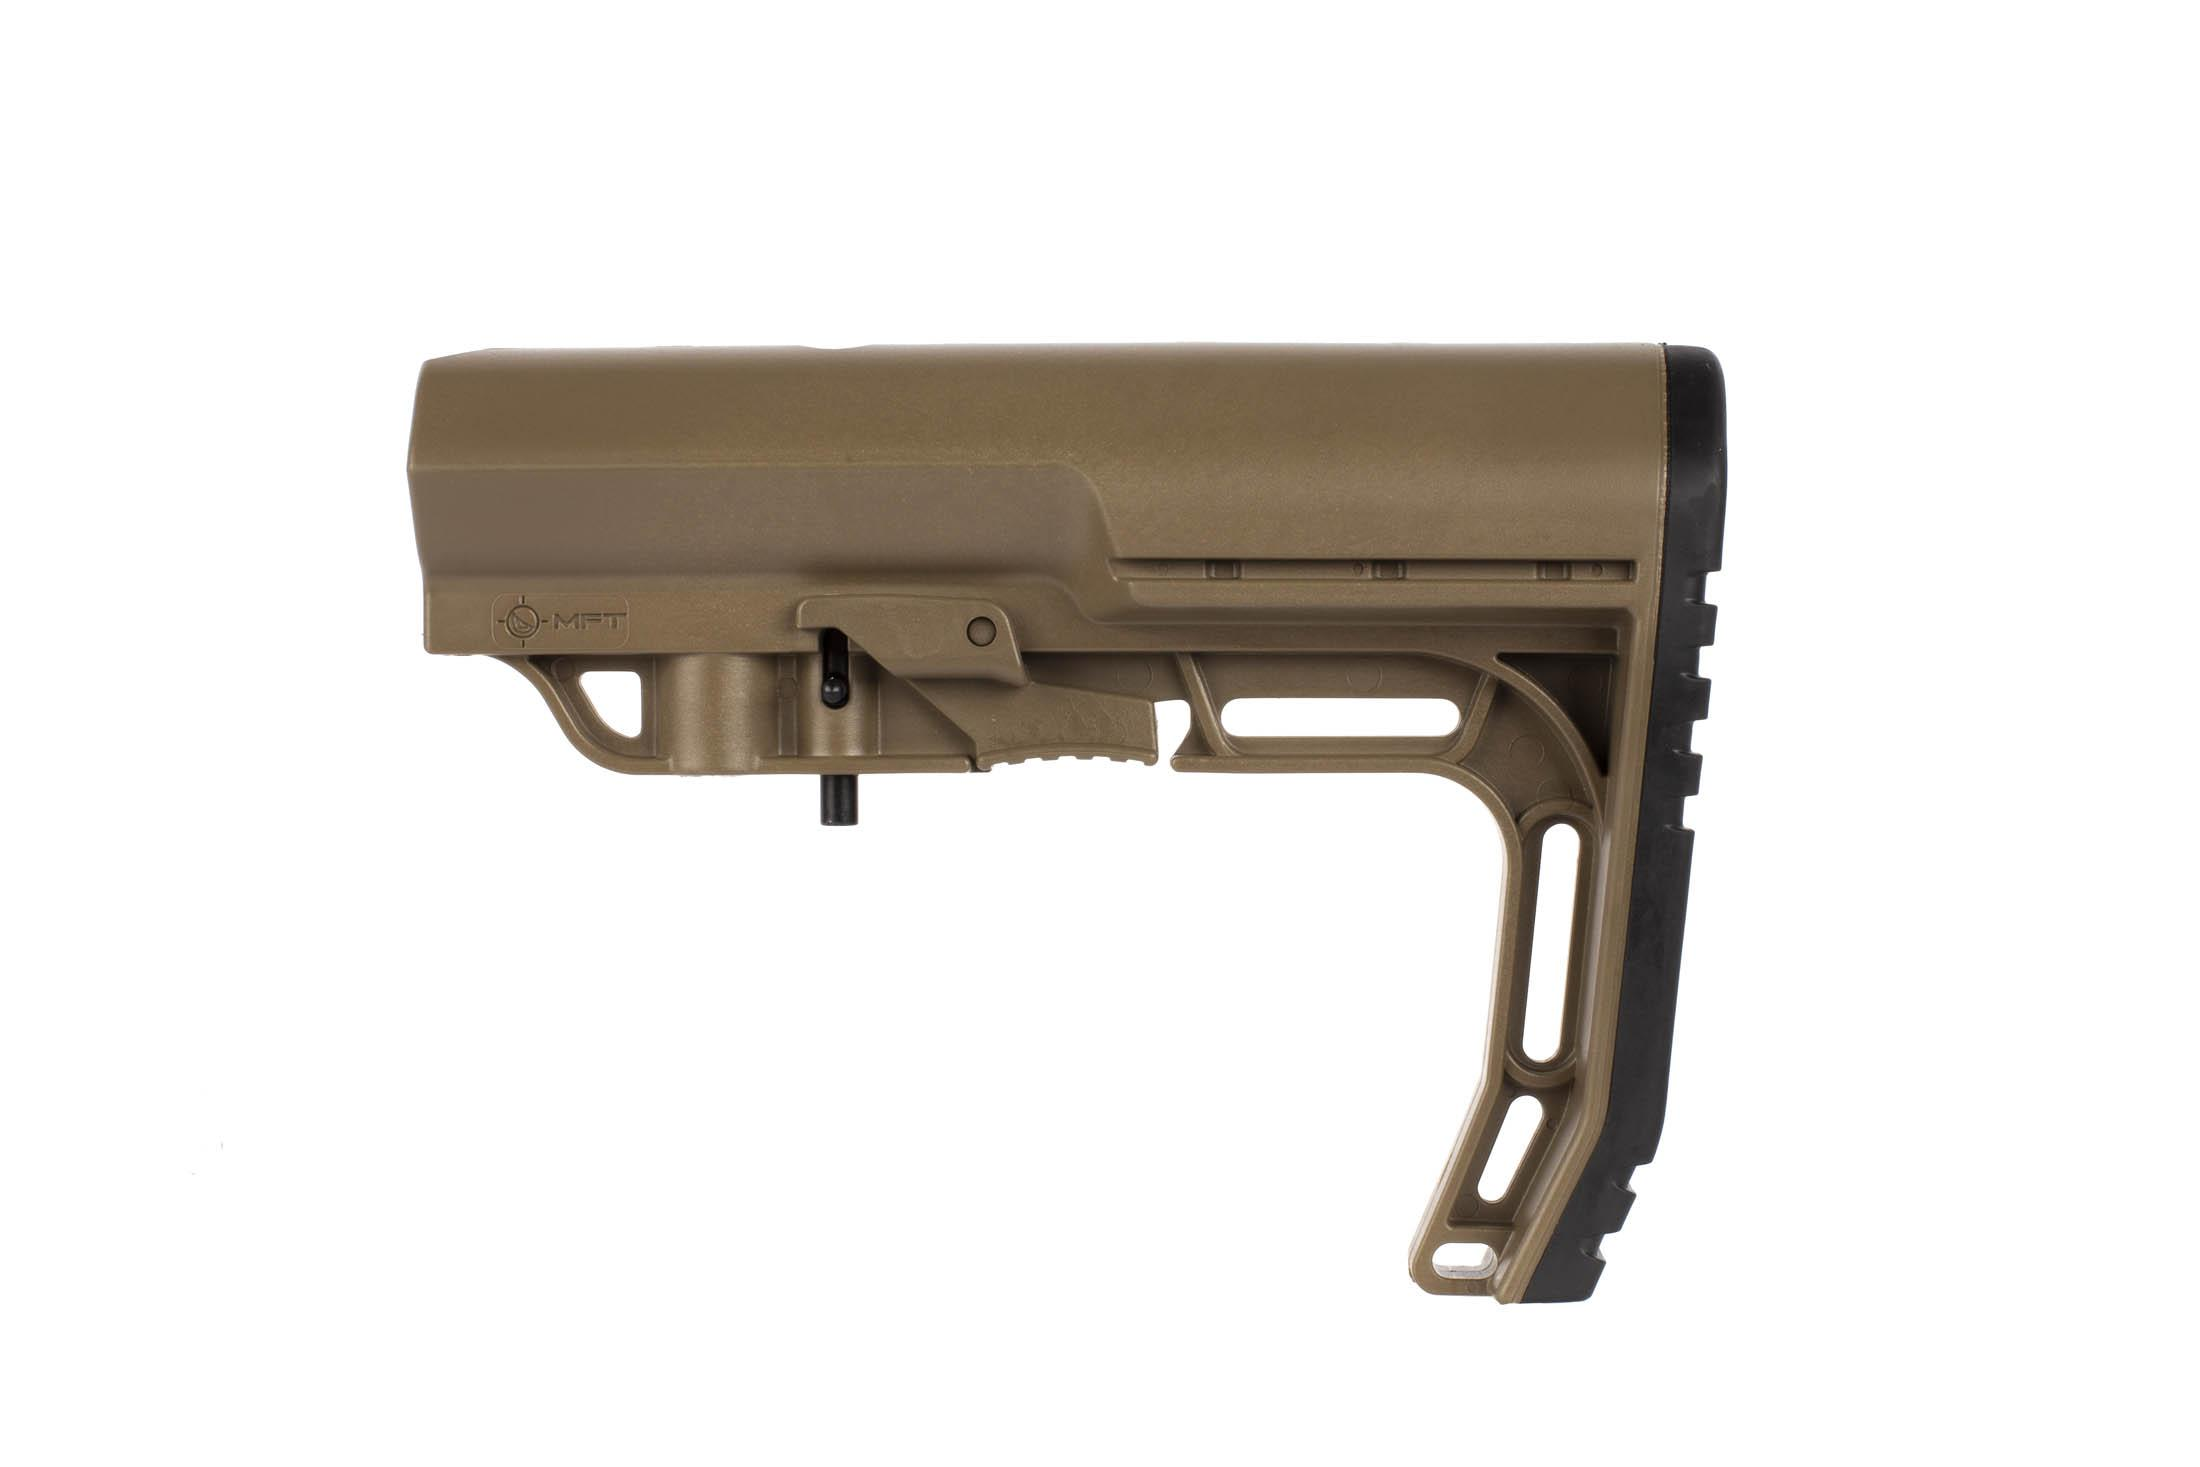 The Mission First Tactical BATTLELINK Minimalist Stock is available in Scorched Dark Earth